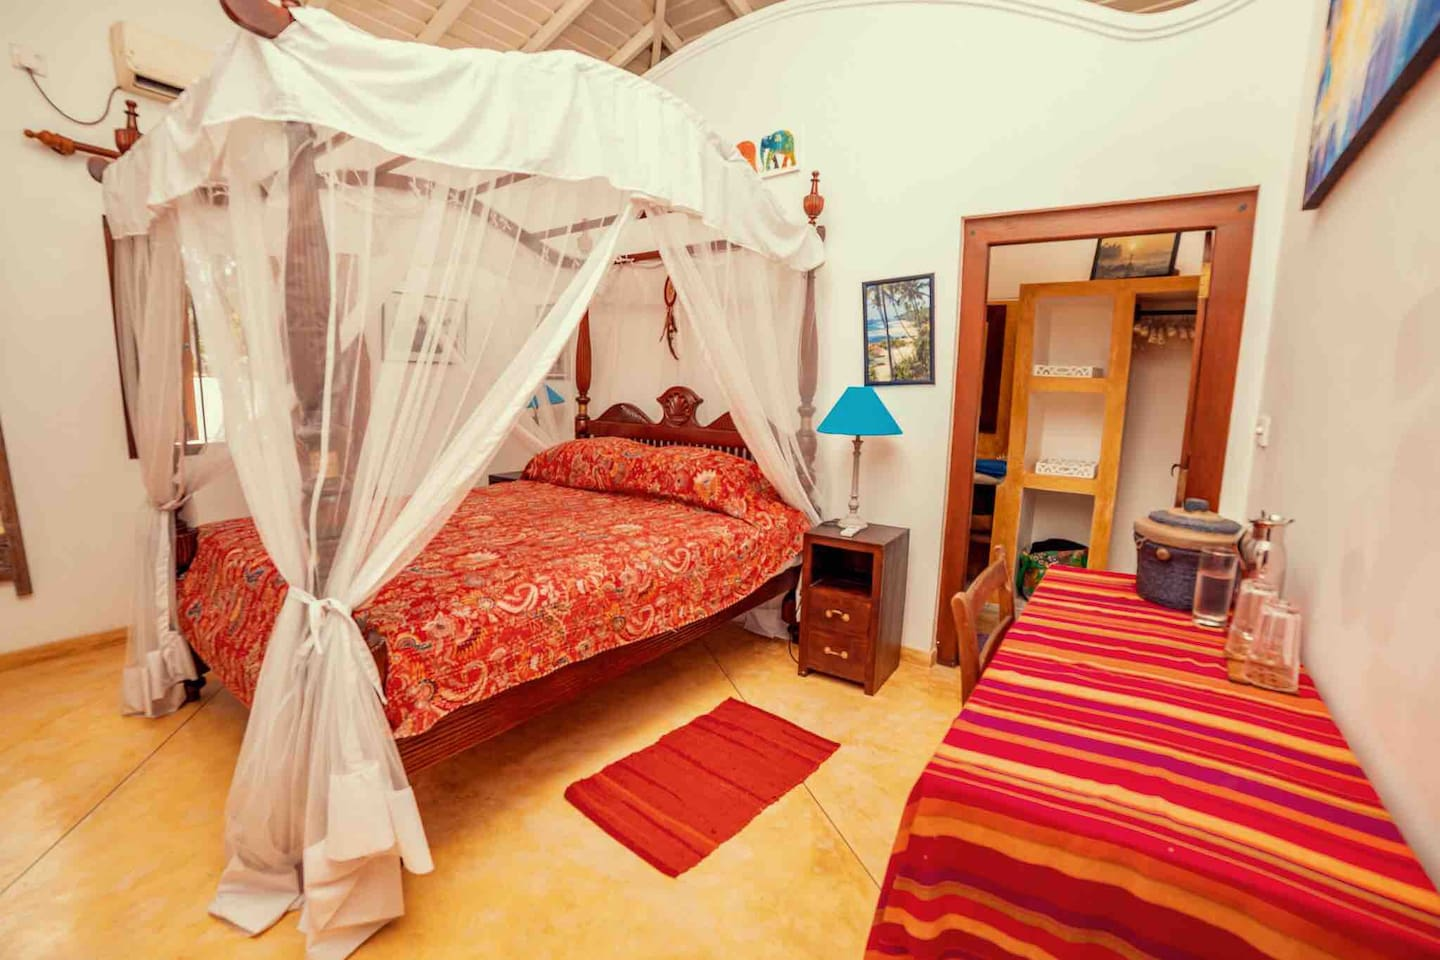 The Cinnamon double bedroom comprises a large king size double bed, delicious high quality linen, mattress topper and feather pillows for sumptuous comfort. There is also a hairdryer and bathroom amenities, beach bag and towels.